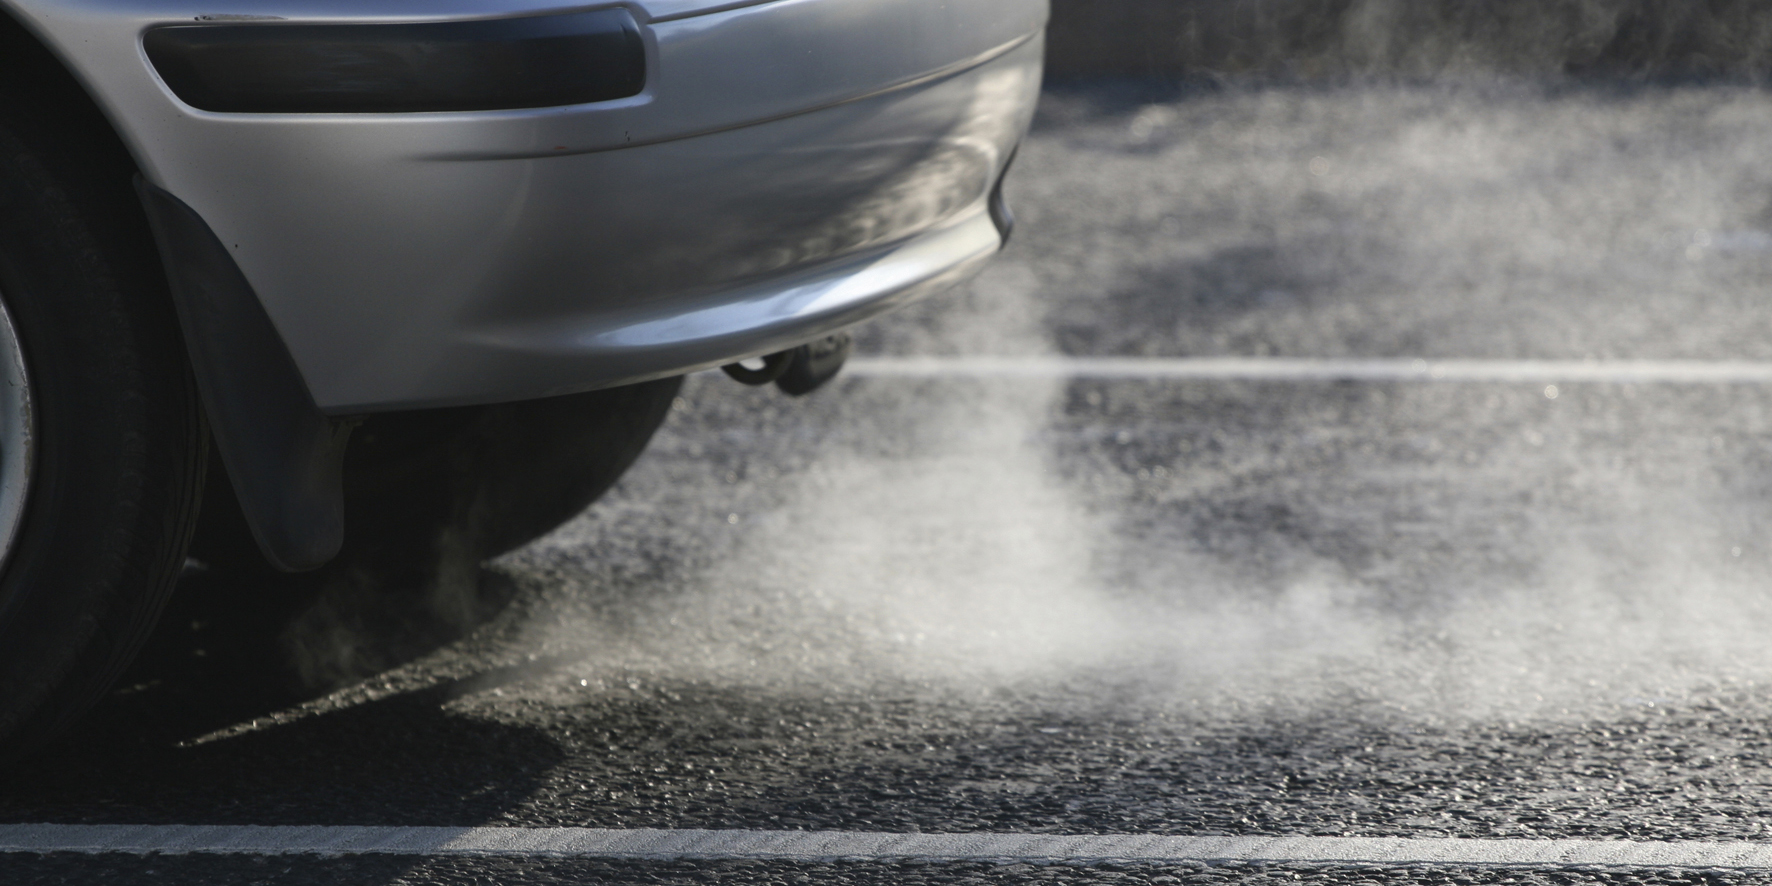 Blue or white smoke from my car exhaust – what does it mean